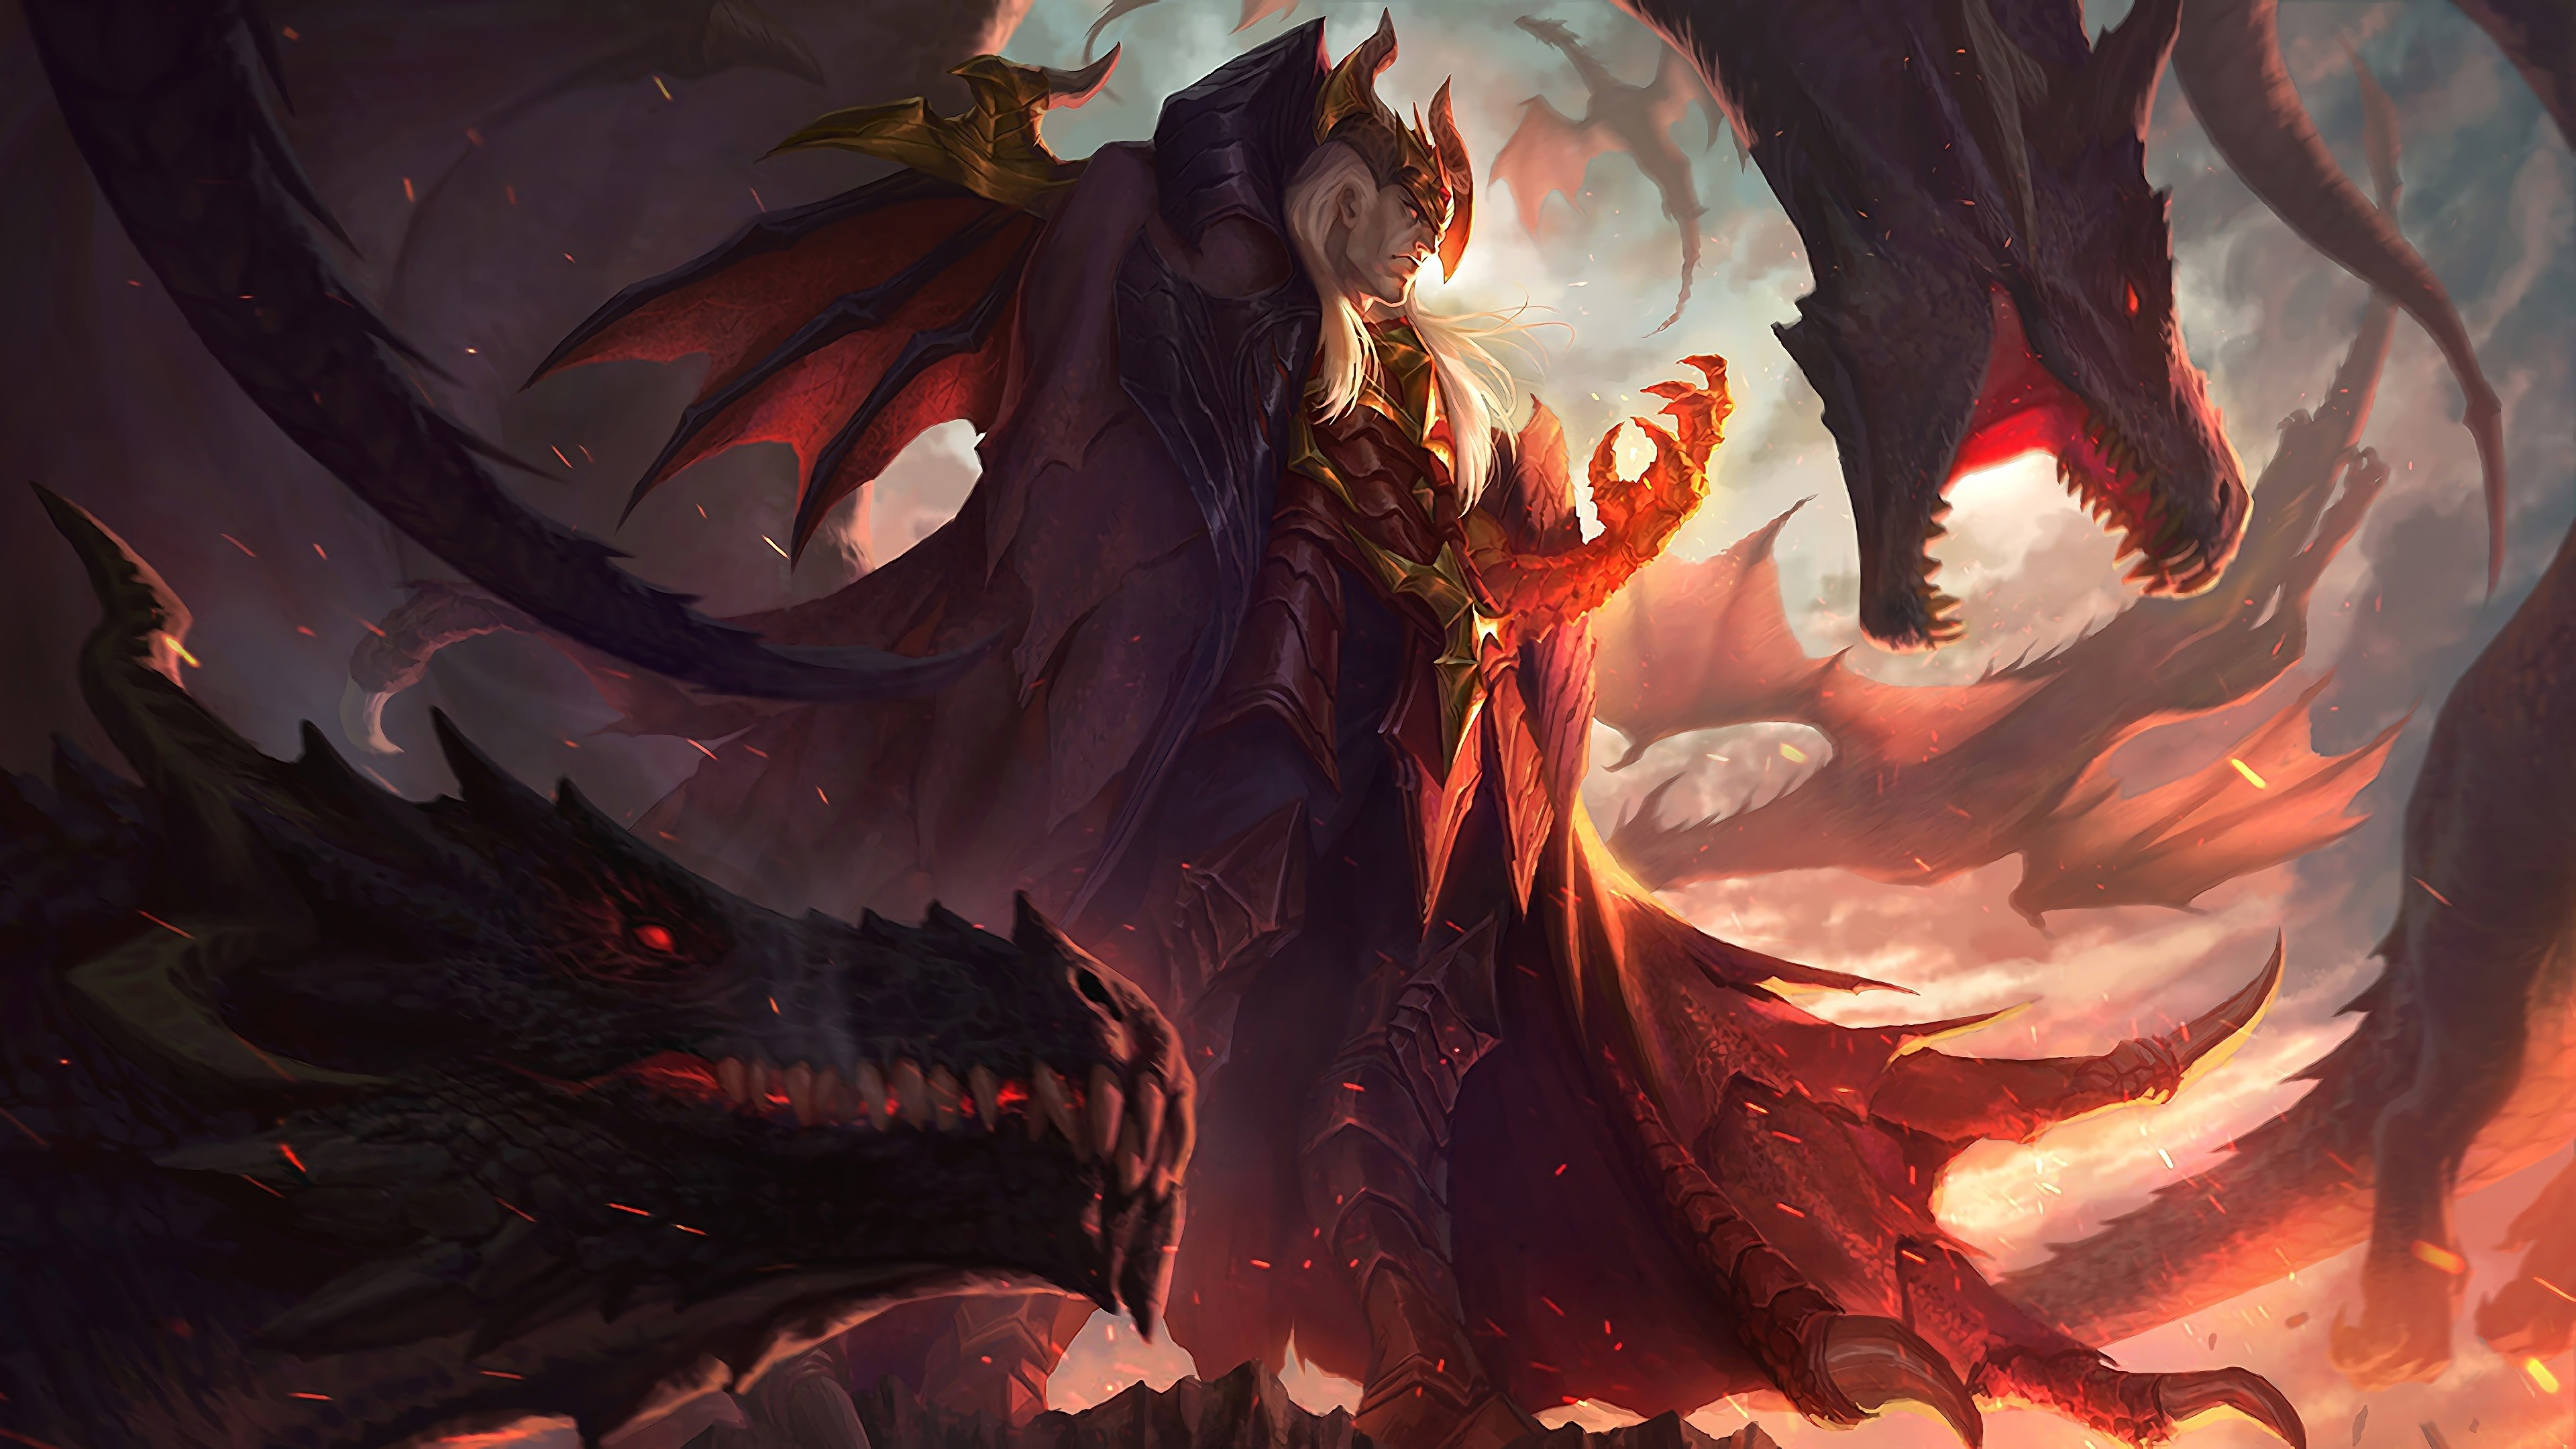 Download 3840x2160 Wallpaper Swain League Of Legends Game